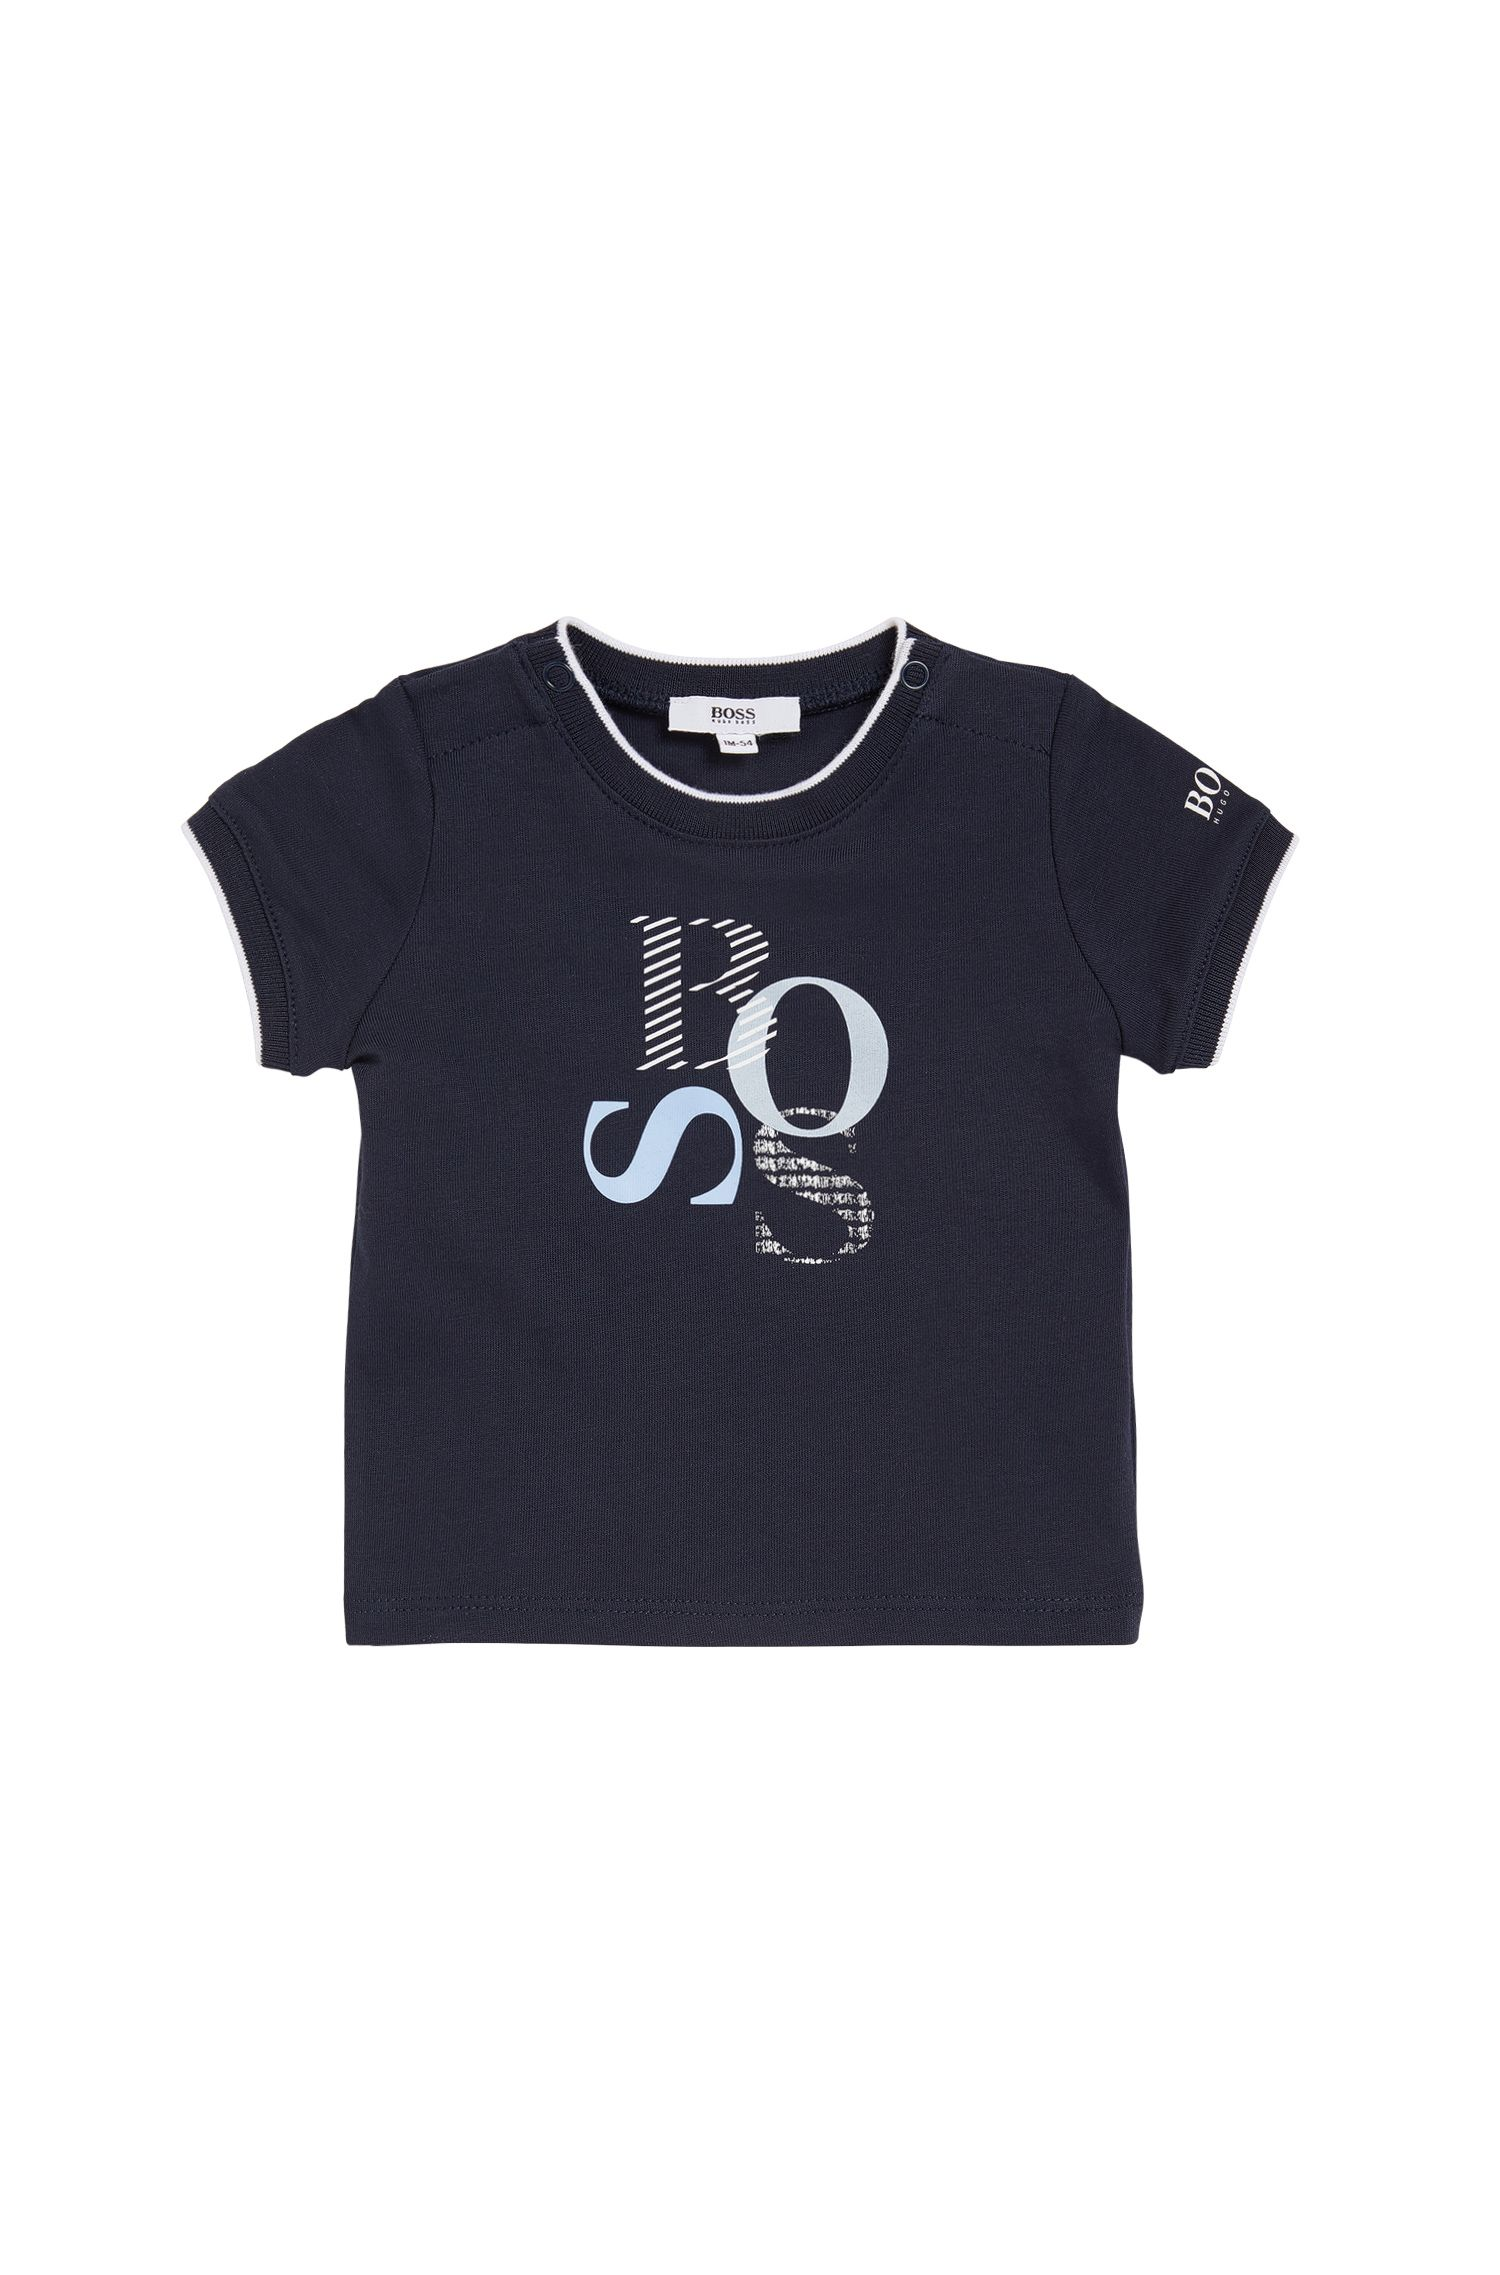 T-shirt Regular Fit en jersey simple, pour bébé